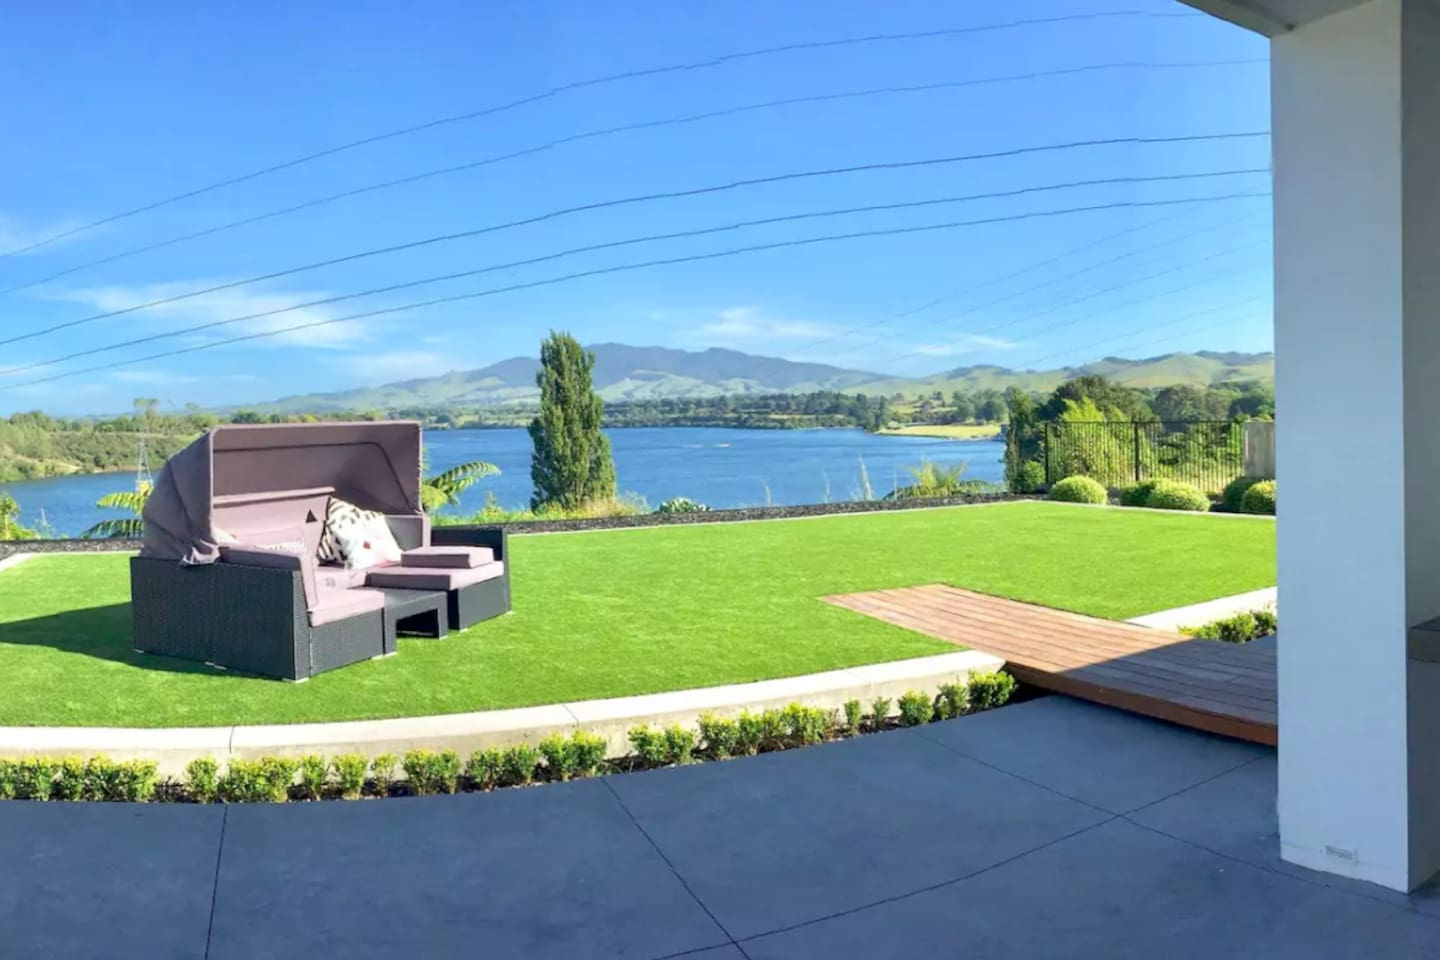 Lake View lawn and daybed